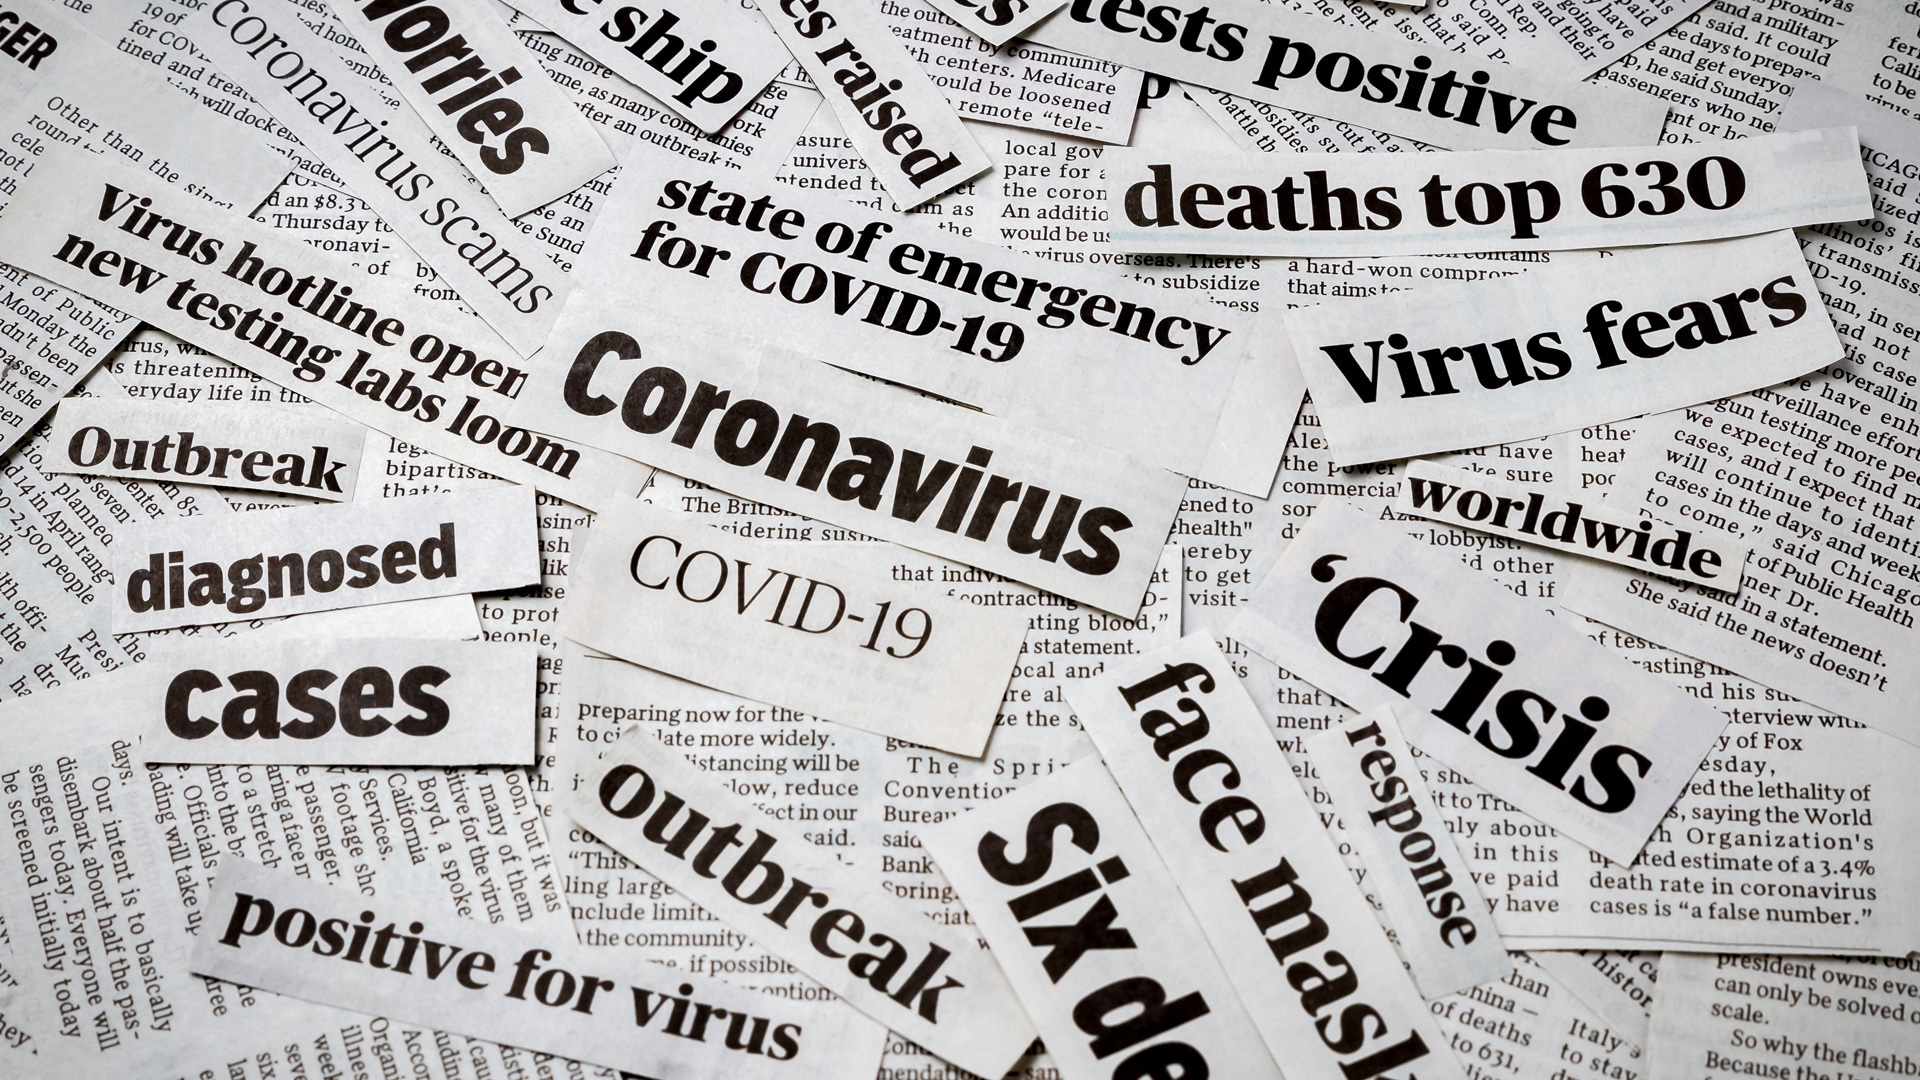 With all the information circulating about coronavirus disease 2019 (COVID-19), it's important we separate myths from reality.